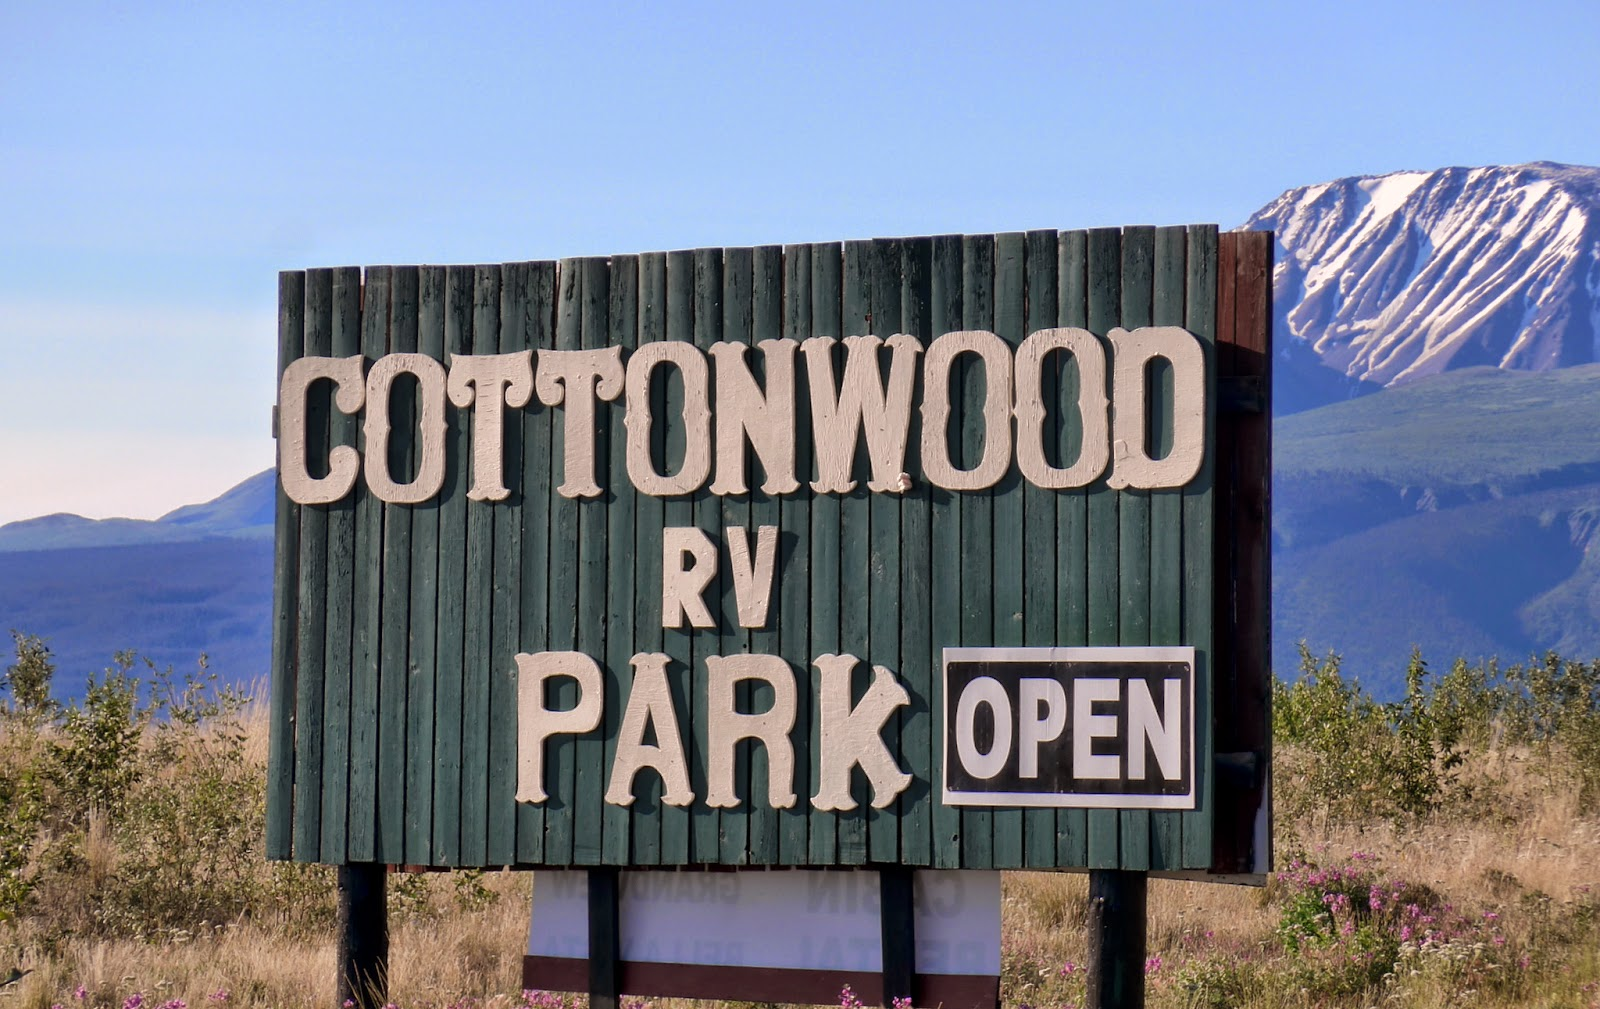 Cottonwood RV Park is great, one of the nicest spots on the trip.